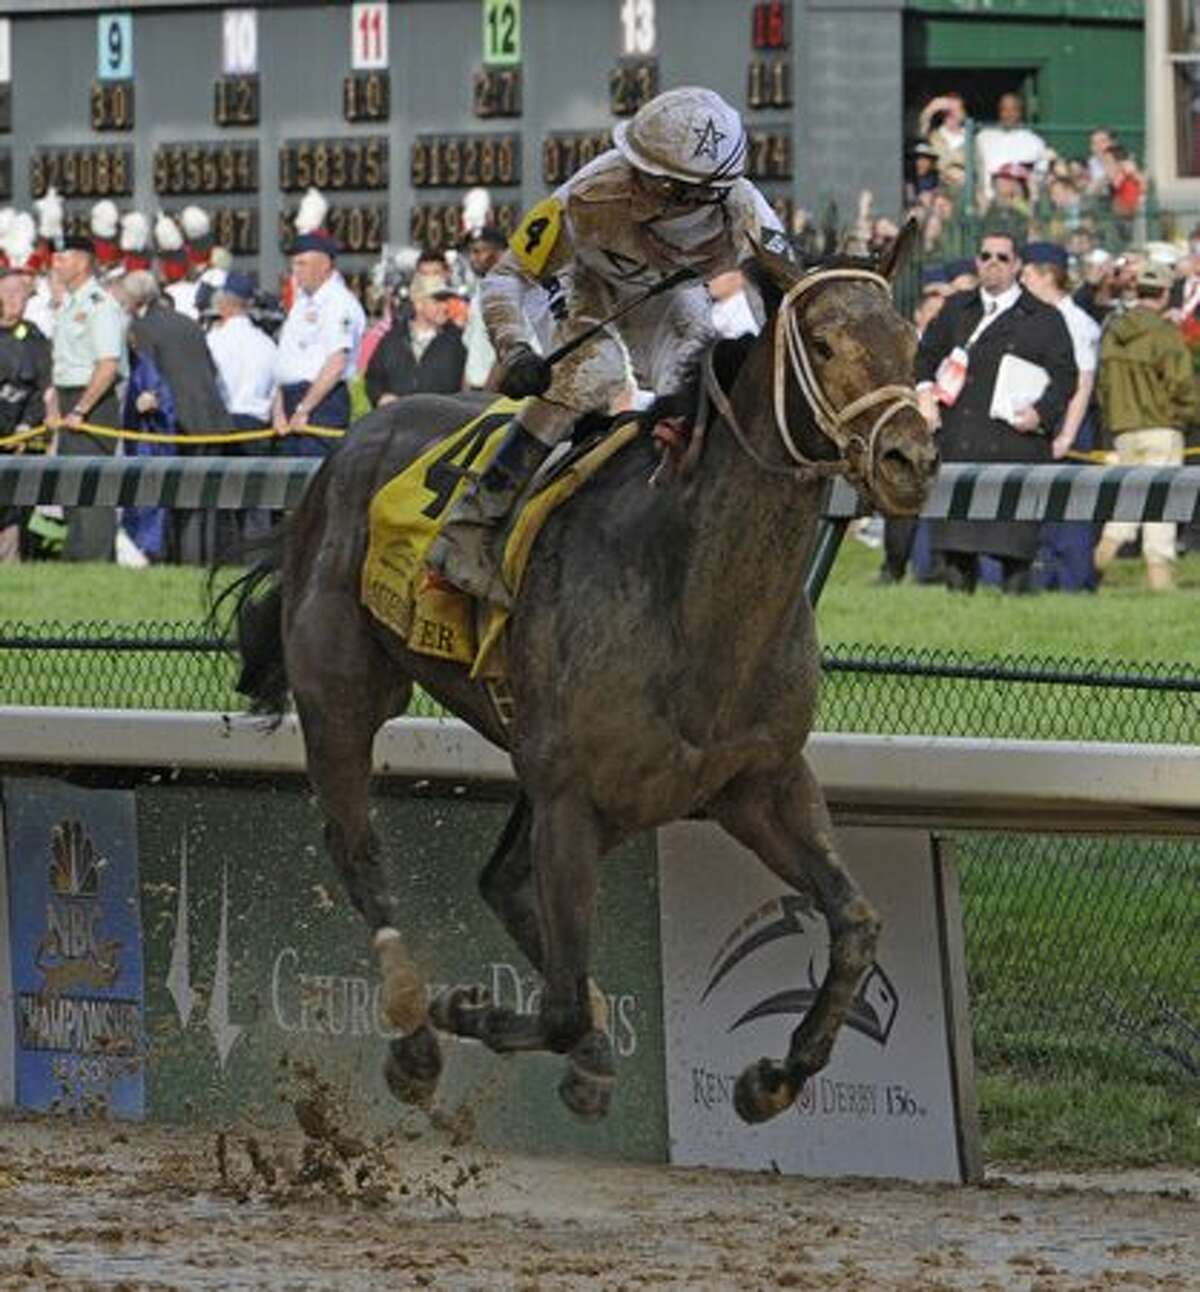 Jockey Calvin Borel wins his third Kentucky Derby in the last four years on Super Saver at Churchill Downs in Louisville, Kentucky May 1, 2010. (Skip Dickstein / Times Union)